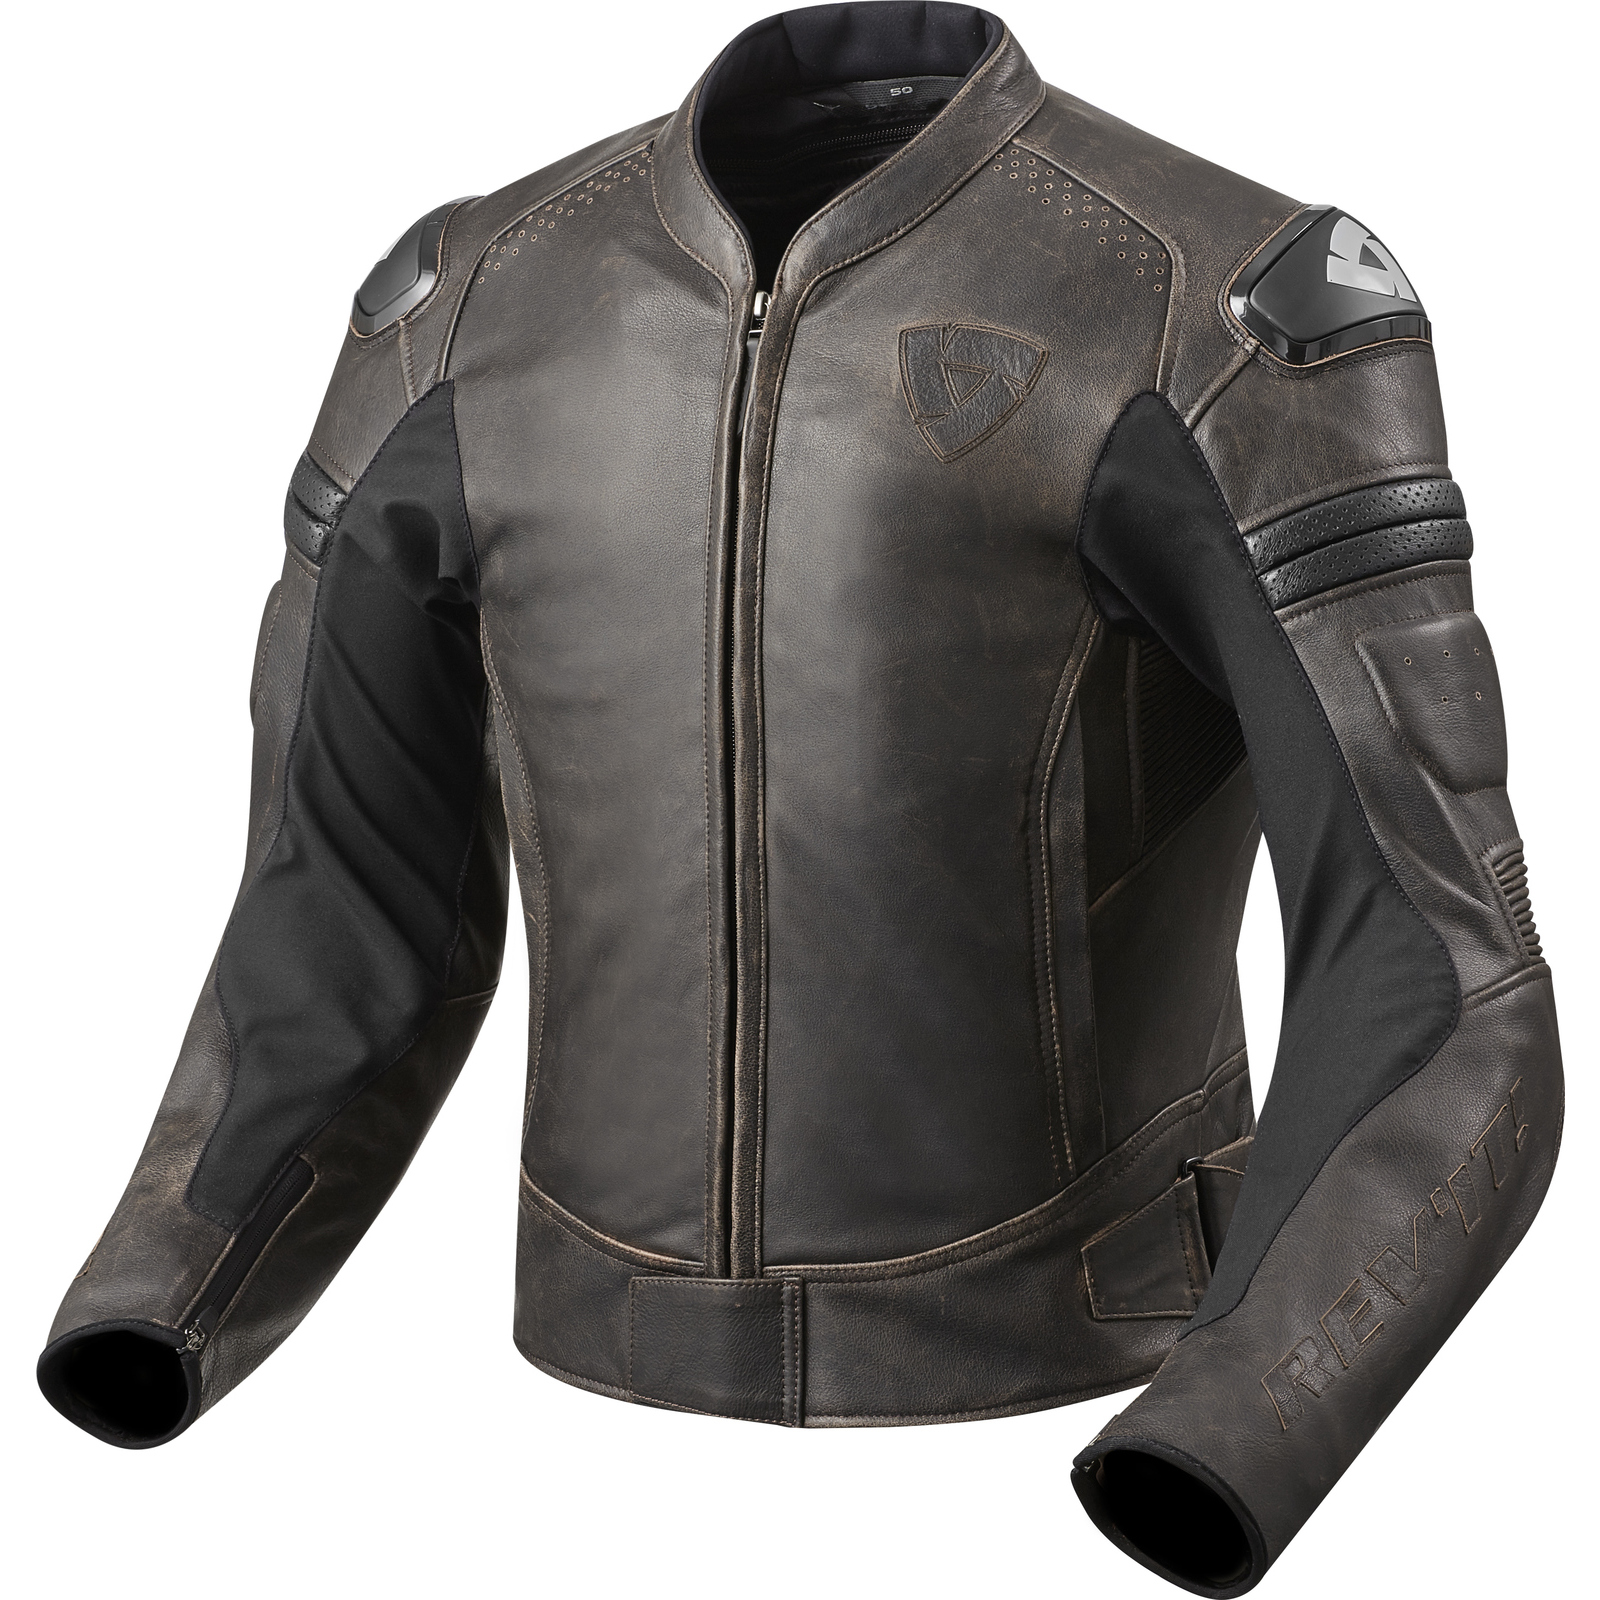 Retro motorcycle leather jackets